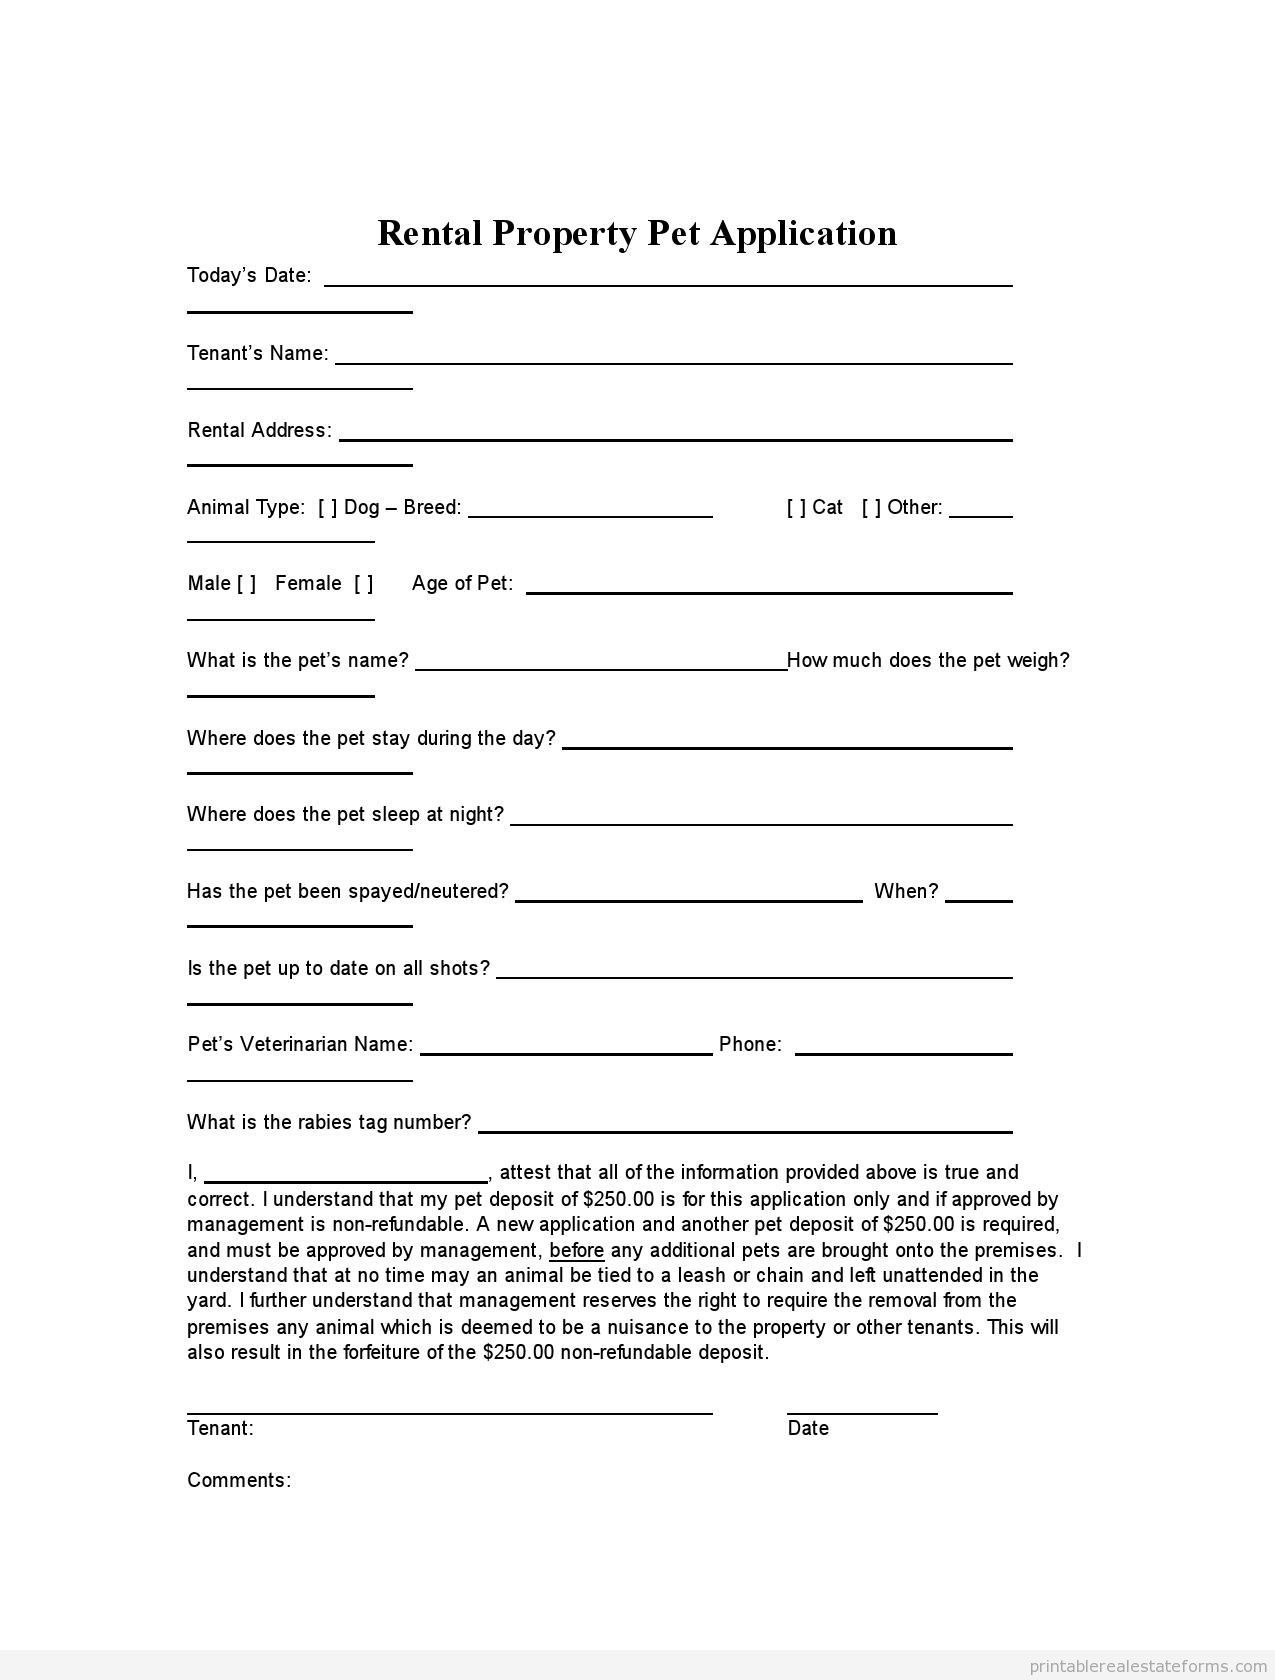 Free RentalProperty MAO Worksheet Printable Real Estate Forms – Printable Lease Form